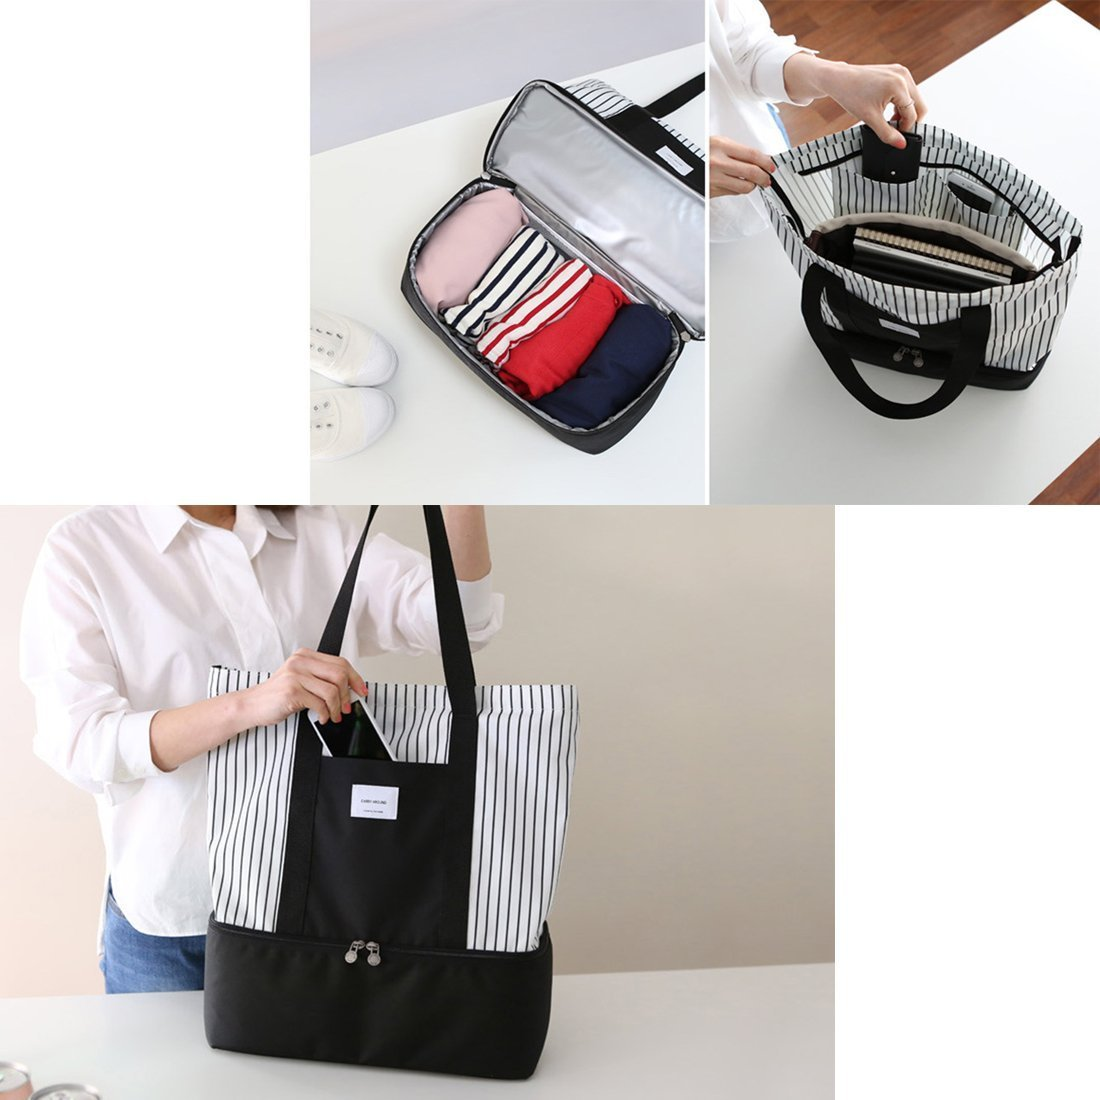 2-in-1 Large Insulated Cooler lunch Tote Bag Ladies Trendy Zippered Teacher Bag Utility Beach Tote Bag for Women by ExquisiteHome (Image #6)